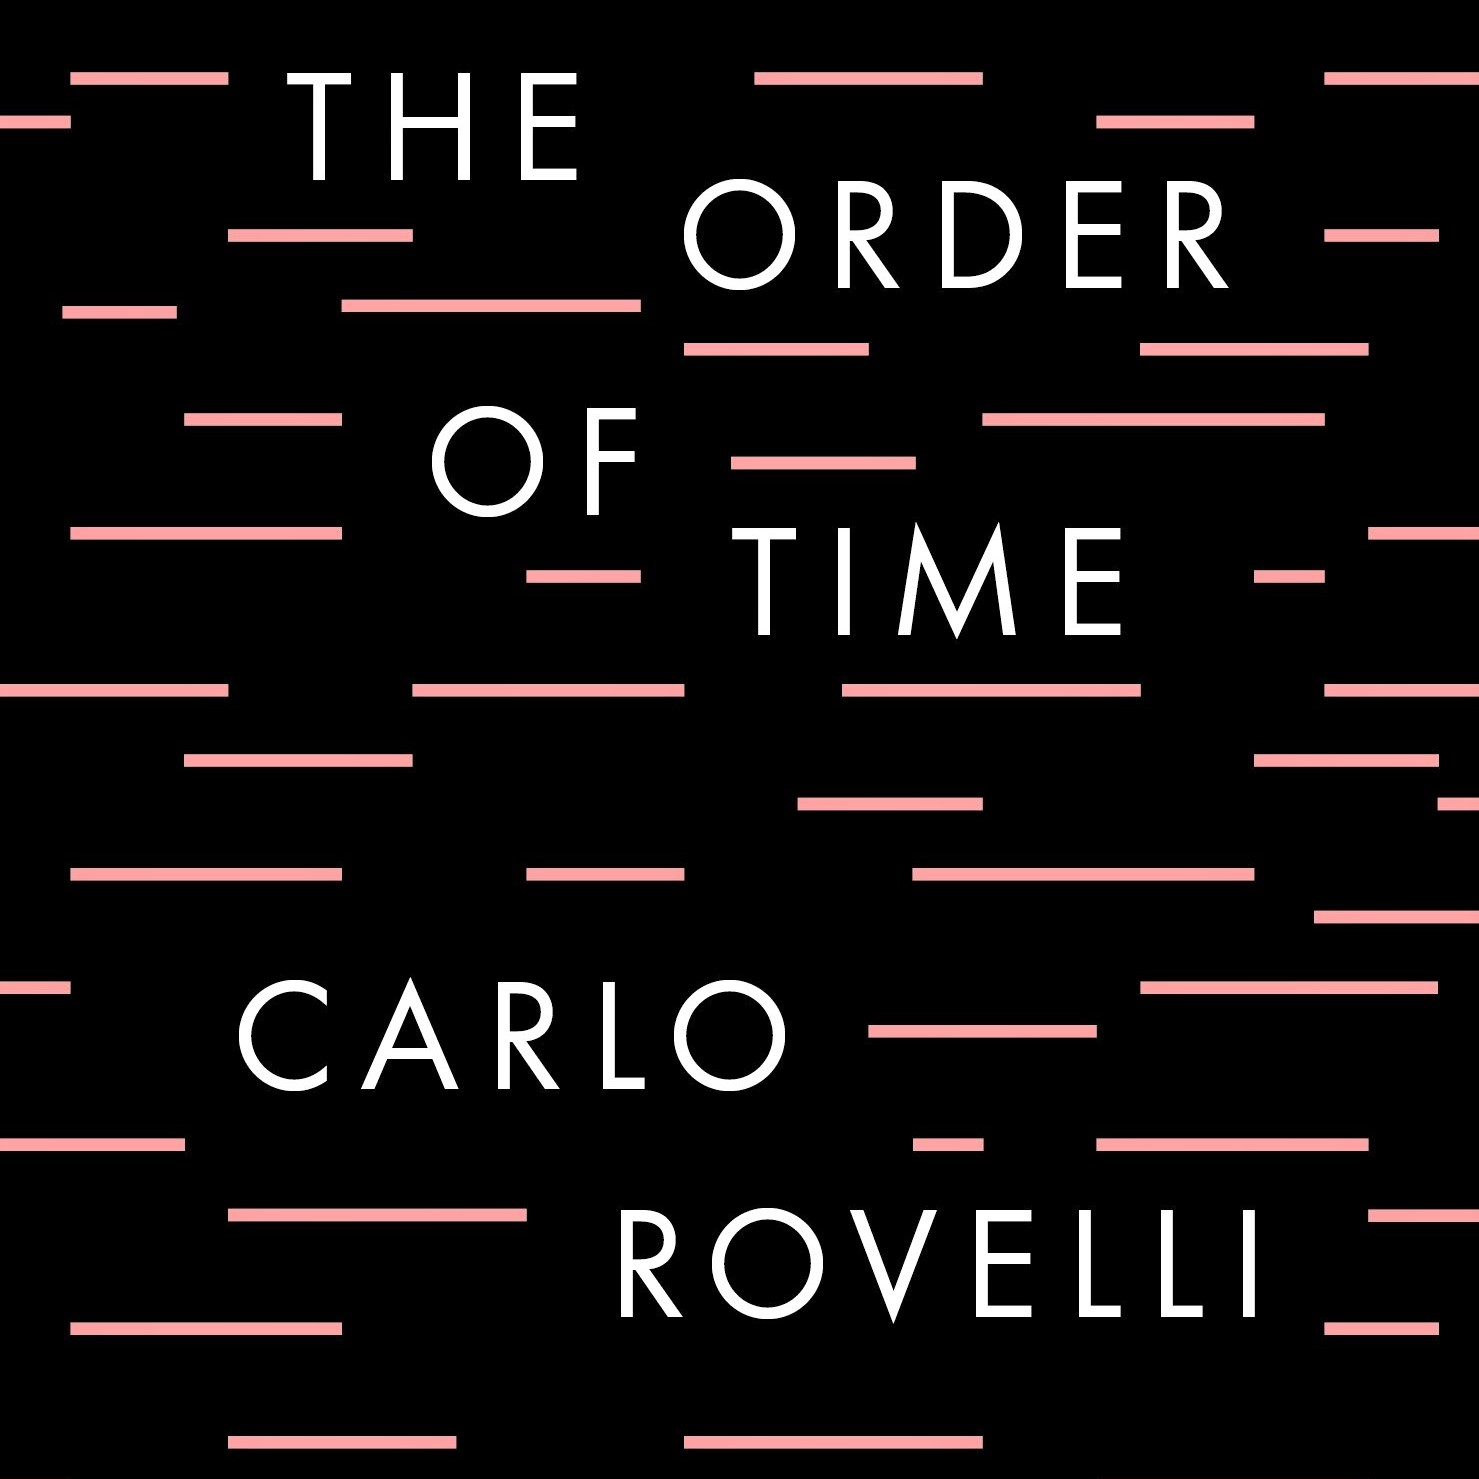 Cover image of Carlo Rovelli's 'The Order of Time'